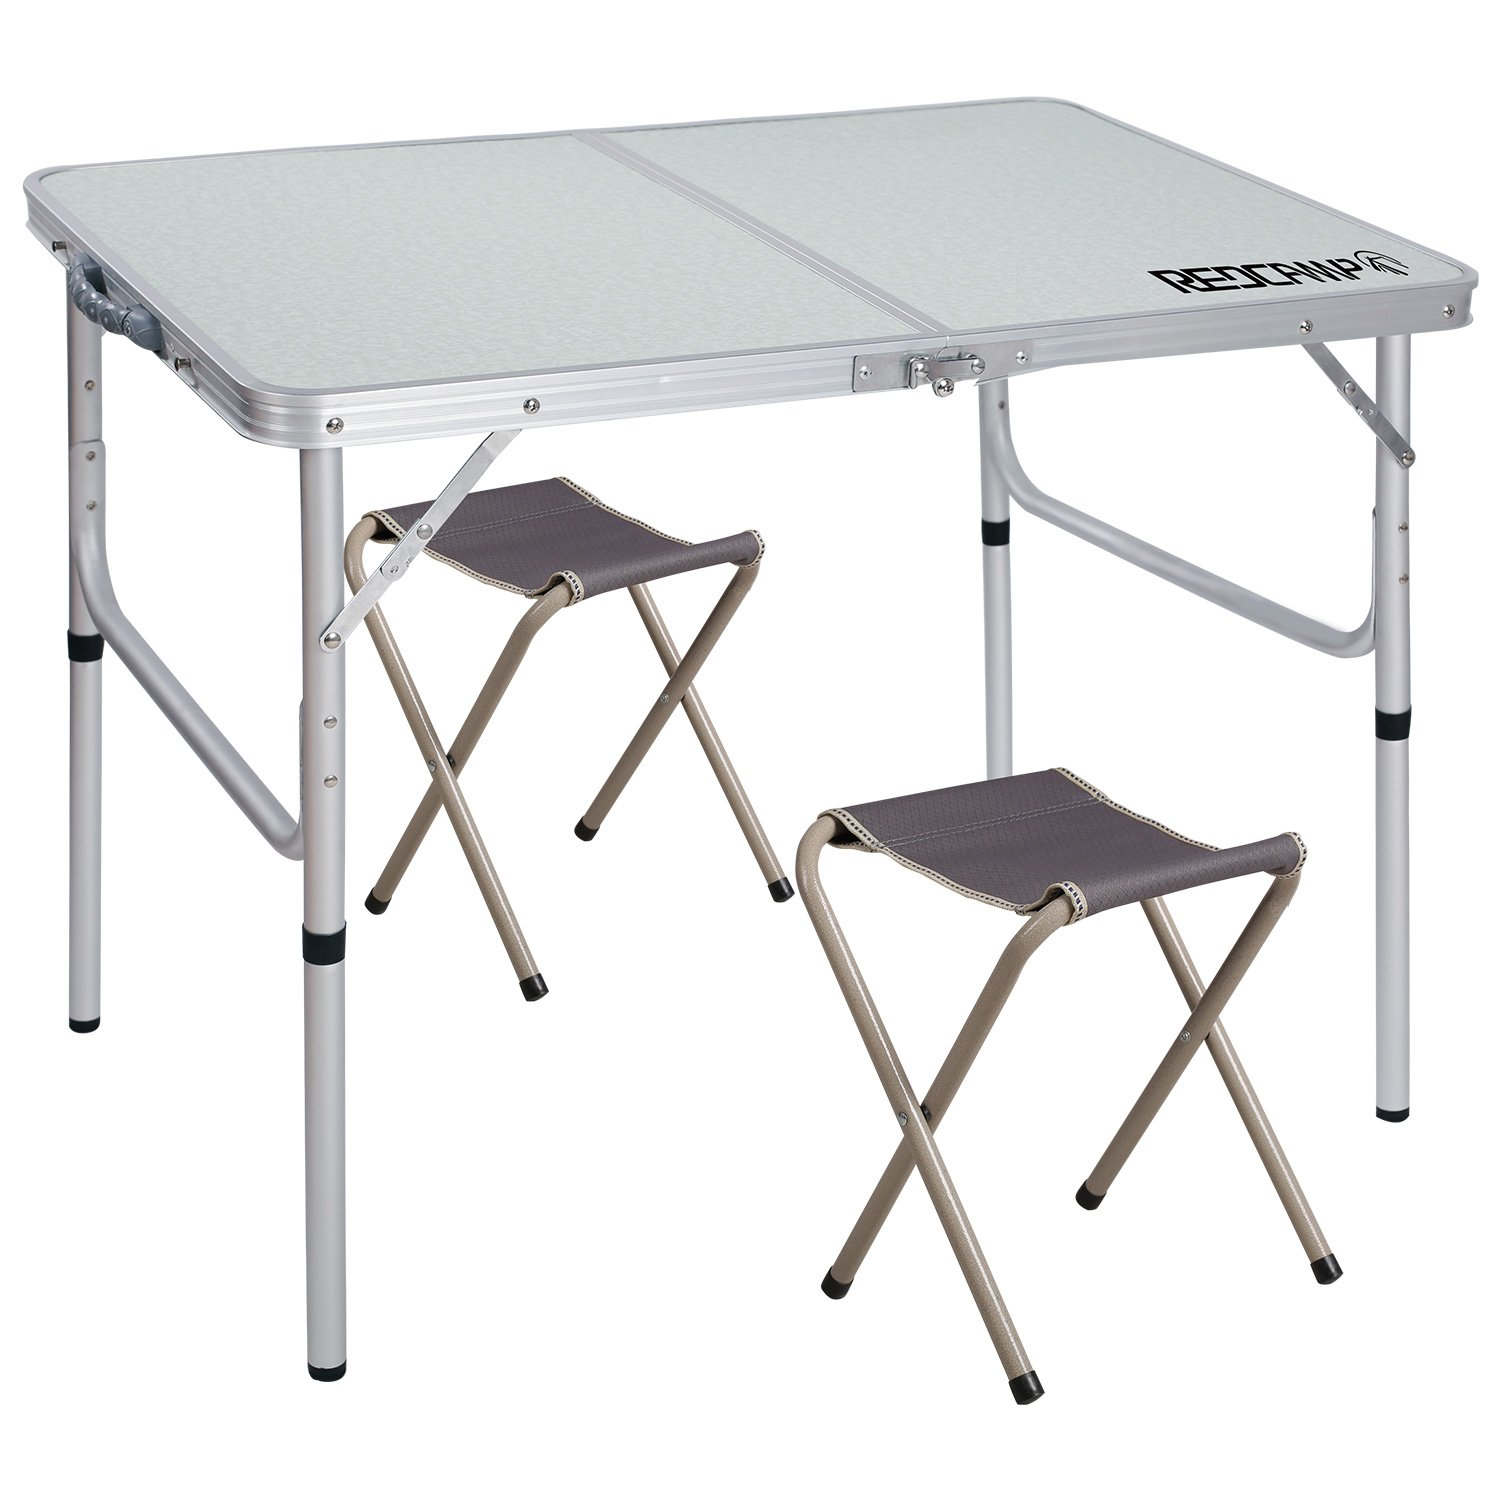 """REDCAMP Folding Camping Table Adjustable, Portable Picnic Table with 2 Chairs, Aluminum White 35.4""""x23.6""""x15"""